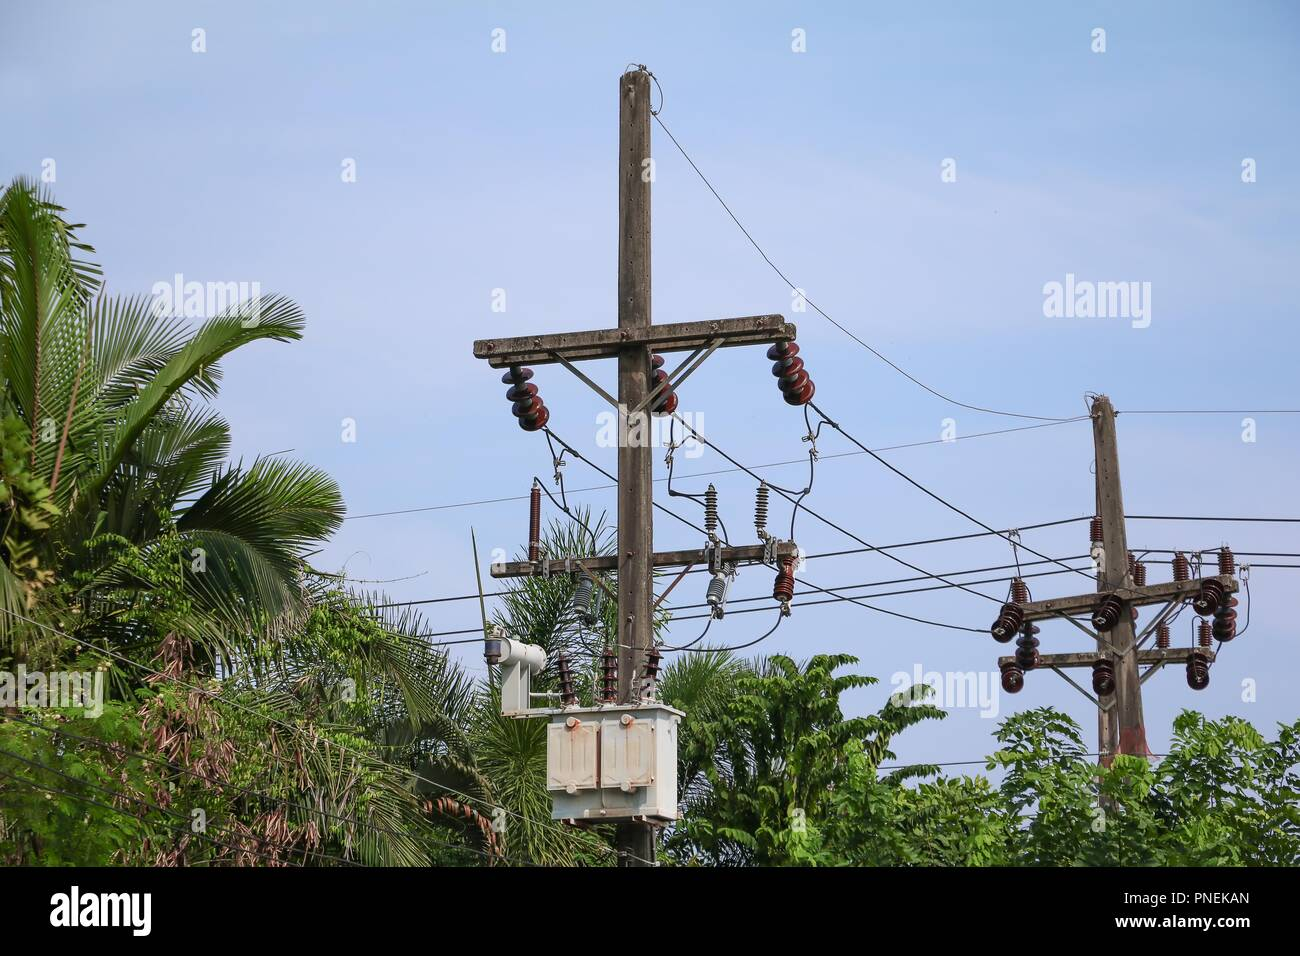 electricity post high voltage and cable line on Sky Blue background. - Stock Image